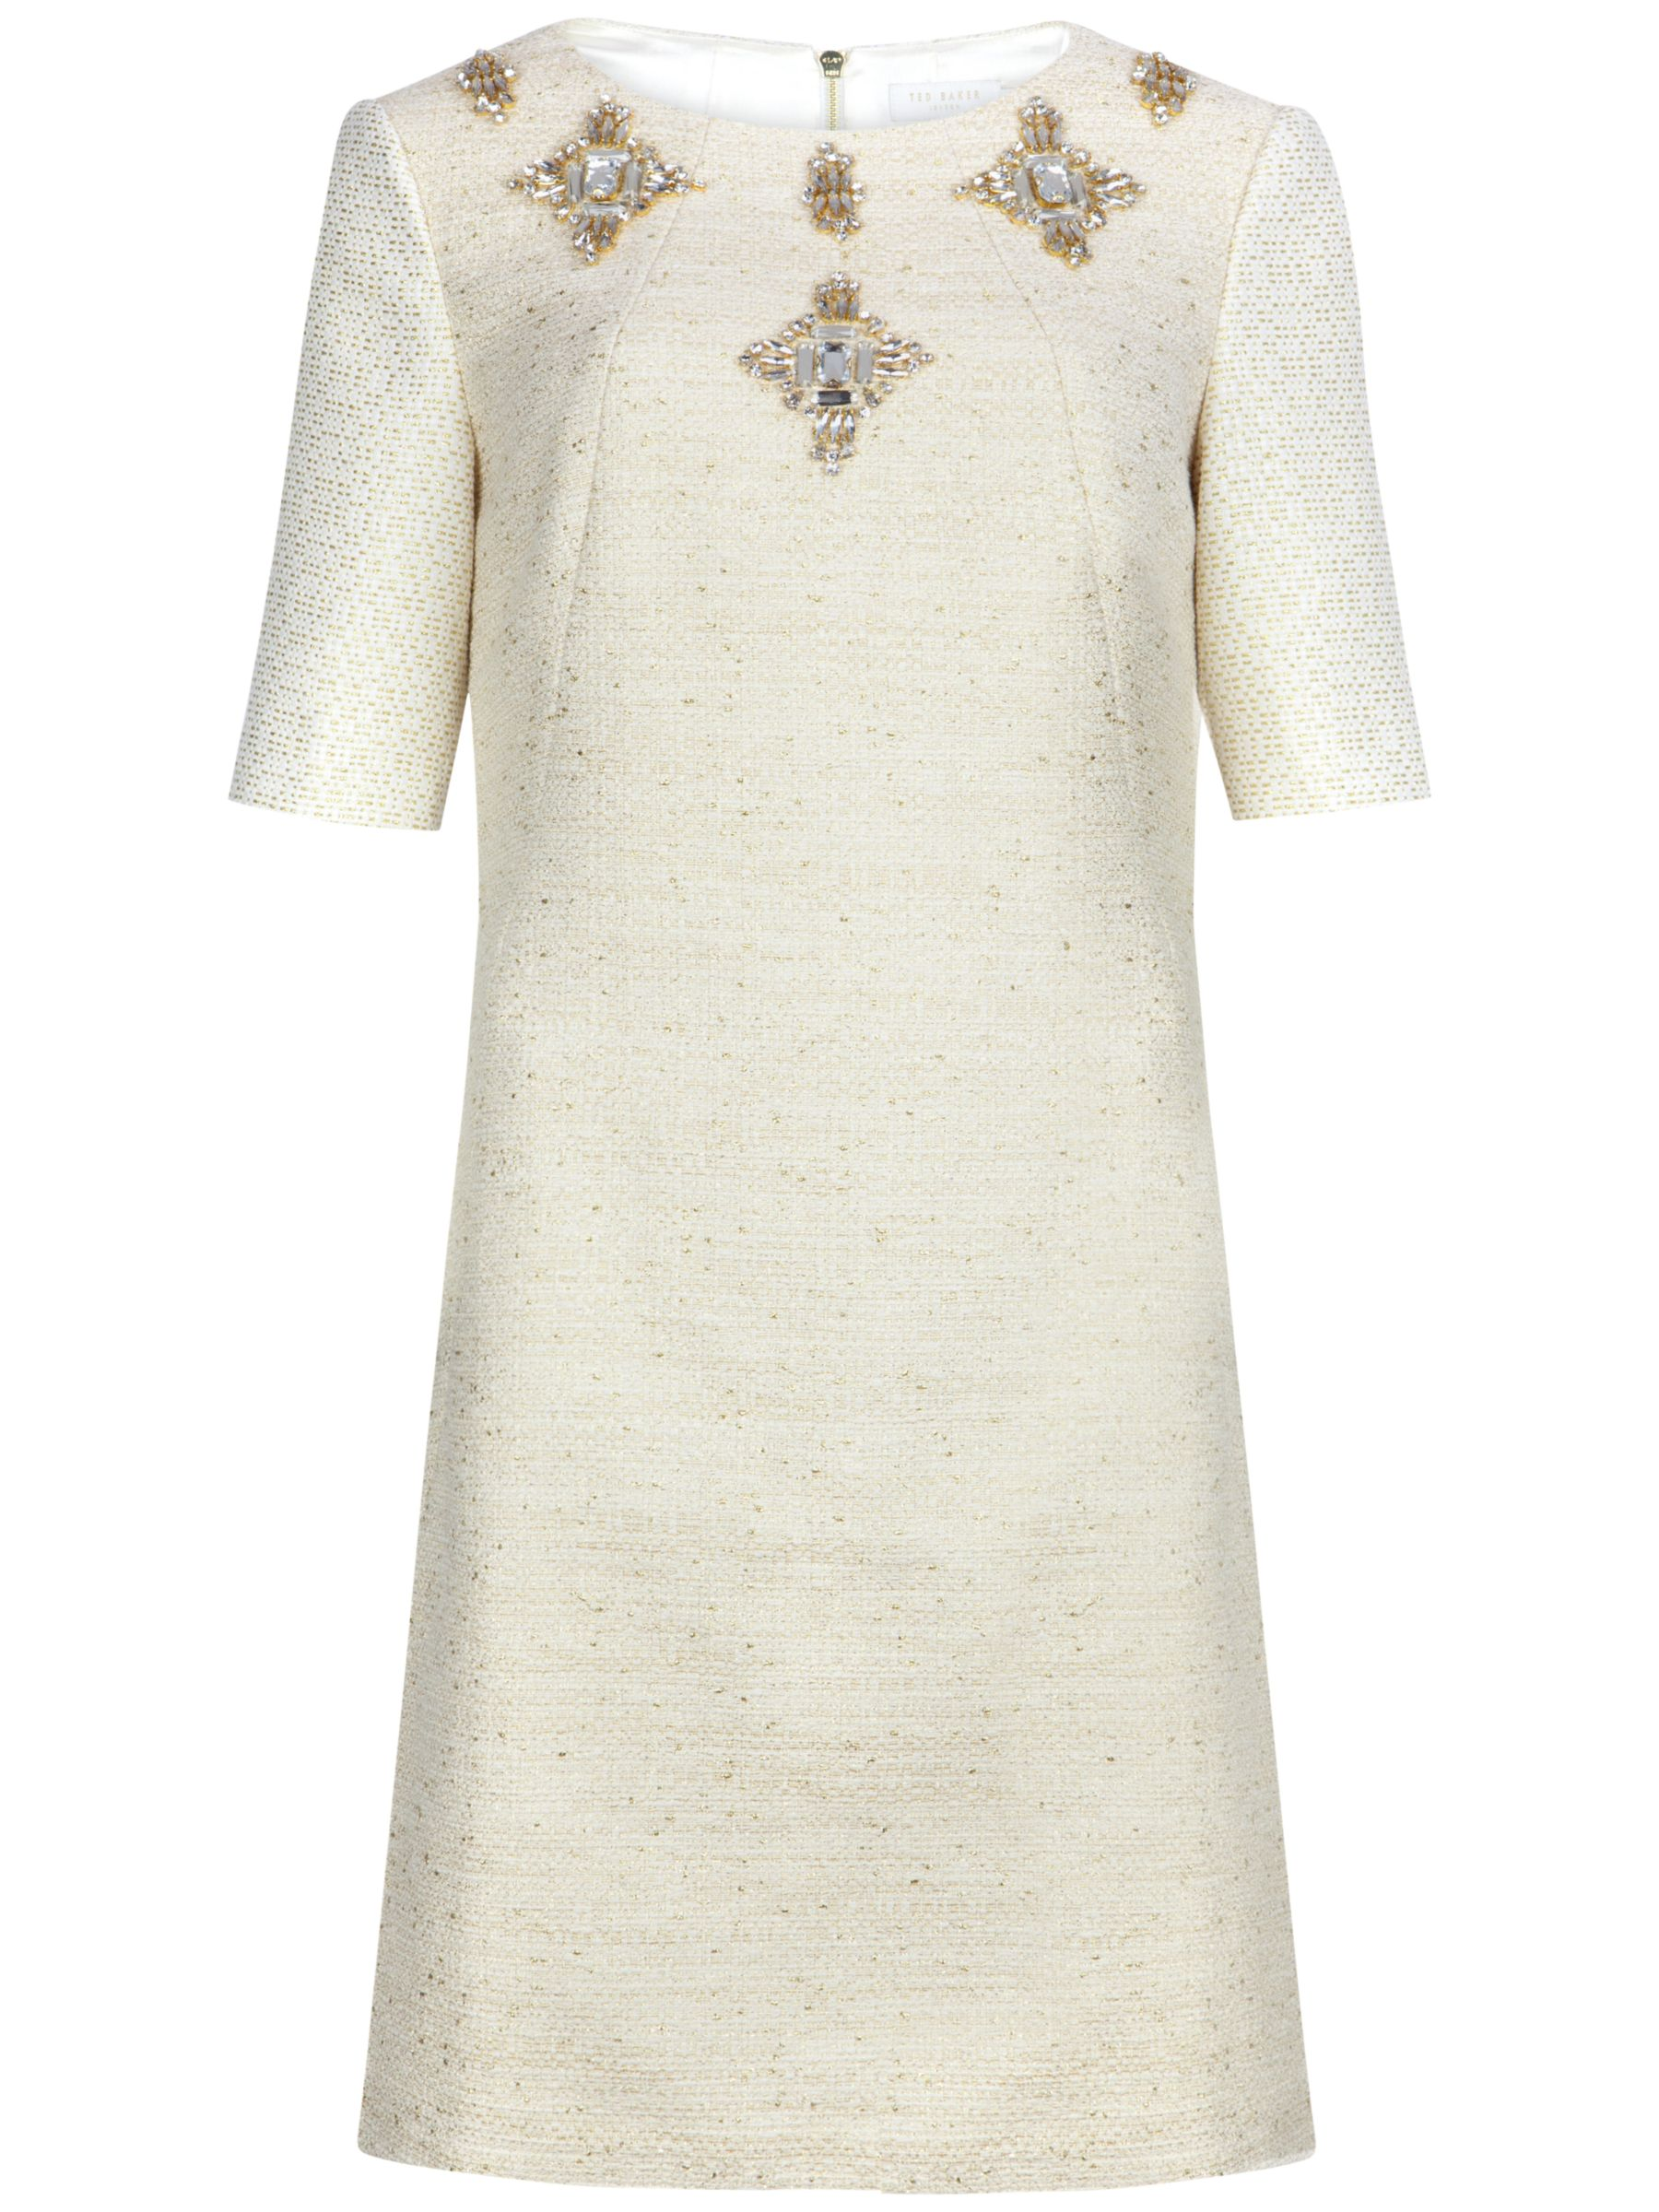 ted baker embellished shift dress cream, ted, baker, embellished, shift, dress, cream, ted baker, 0|4|1|3|2|5, women, womens dresses, fashion magazine, womenswear, men, brands l-z, 1923991